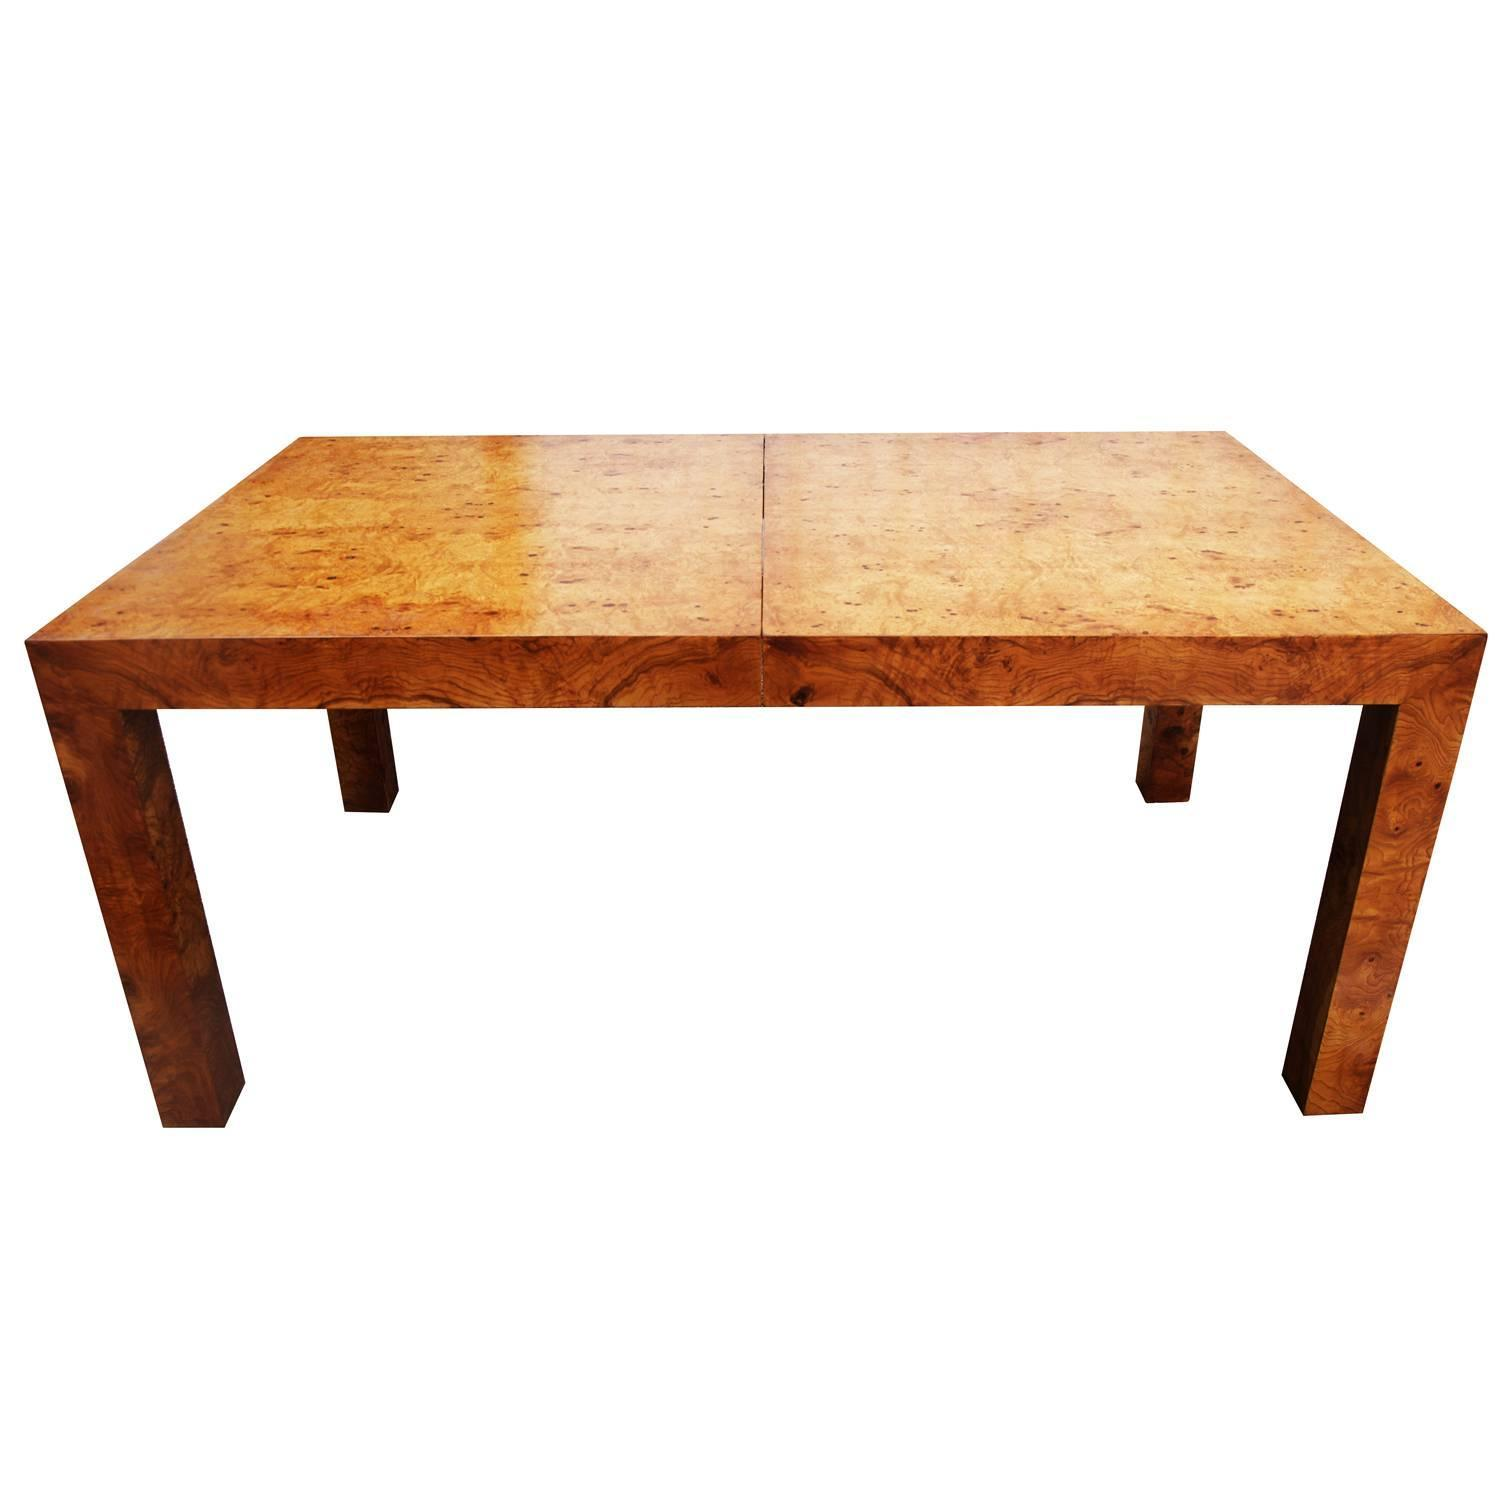 Milo Baughman Olive Burl Wood Parsons Dining Table Or Desk For Sale At  1stdibs